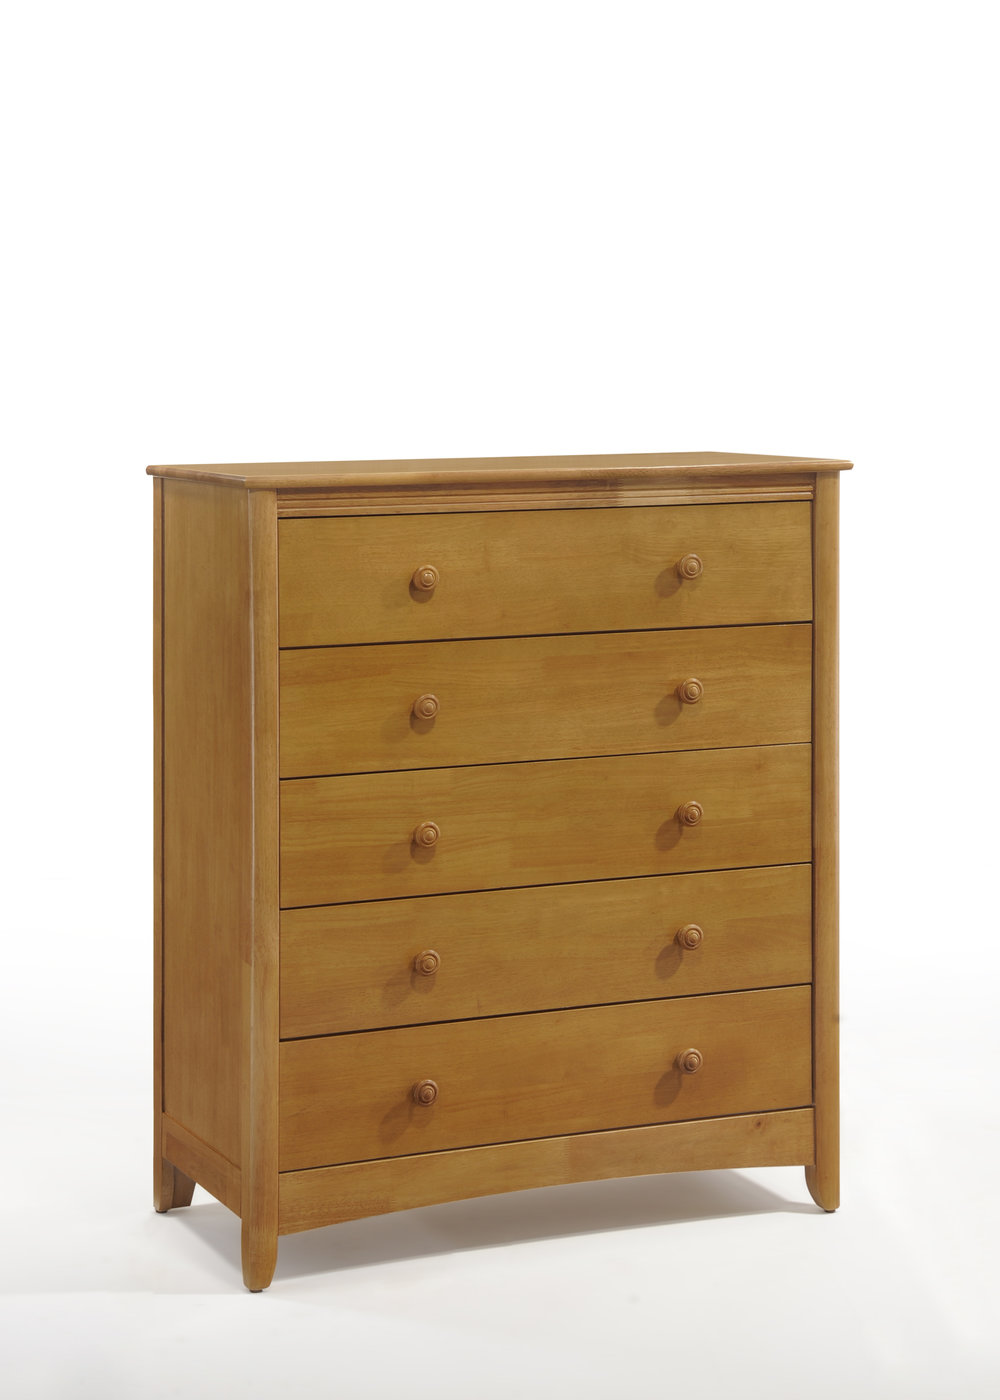 Secrets 5 Drawer Chest Medium Oak.jpg